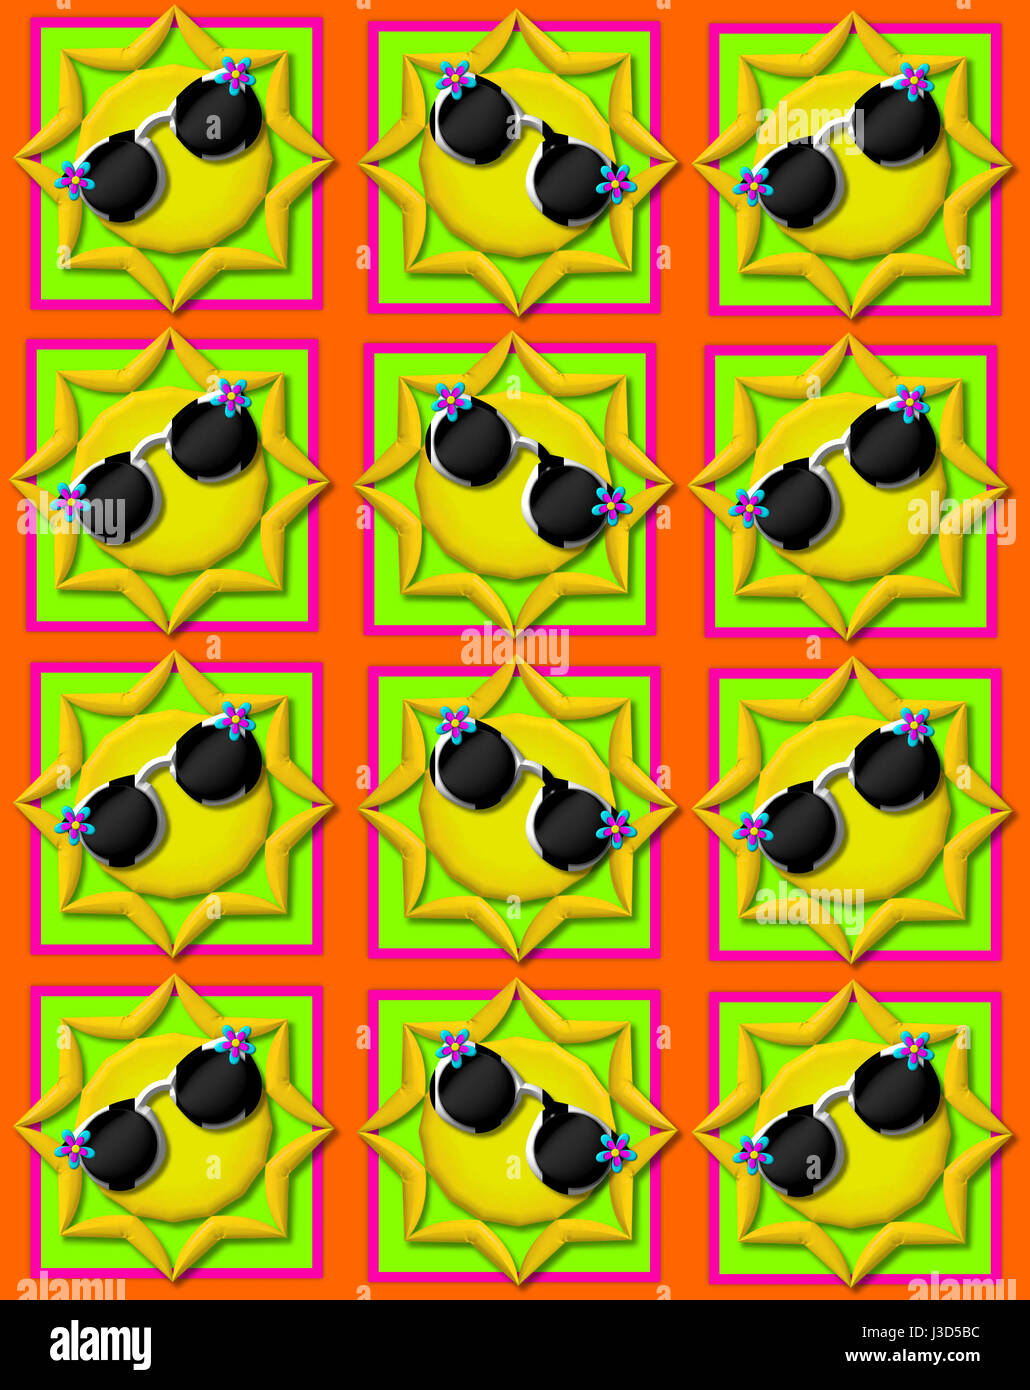 Orange background is decorated with colorful squares.  Squares are topped with yellow sun wearing sunshades. - Stock Image